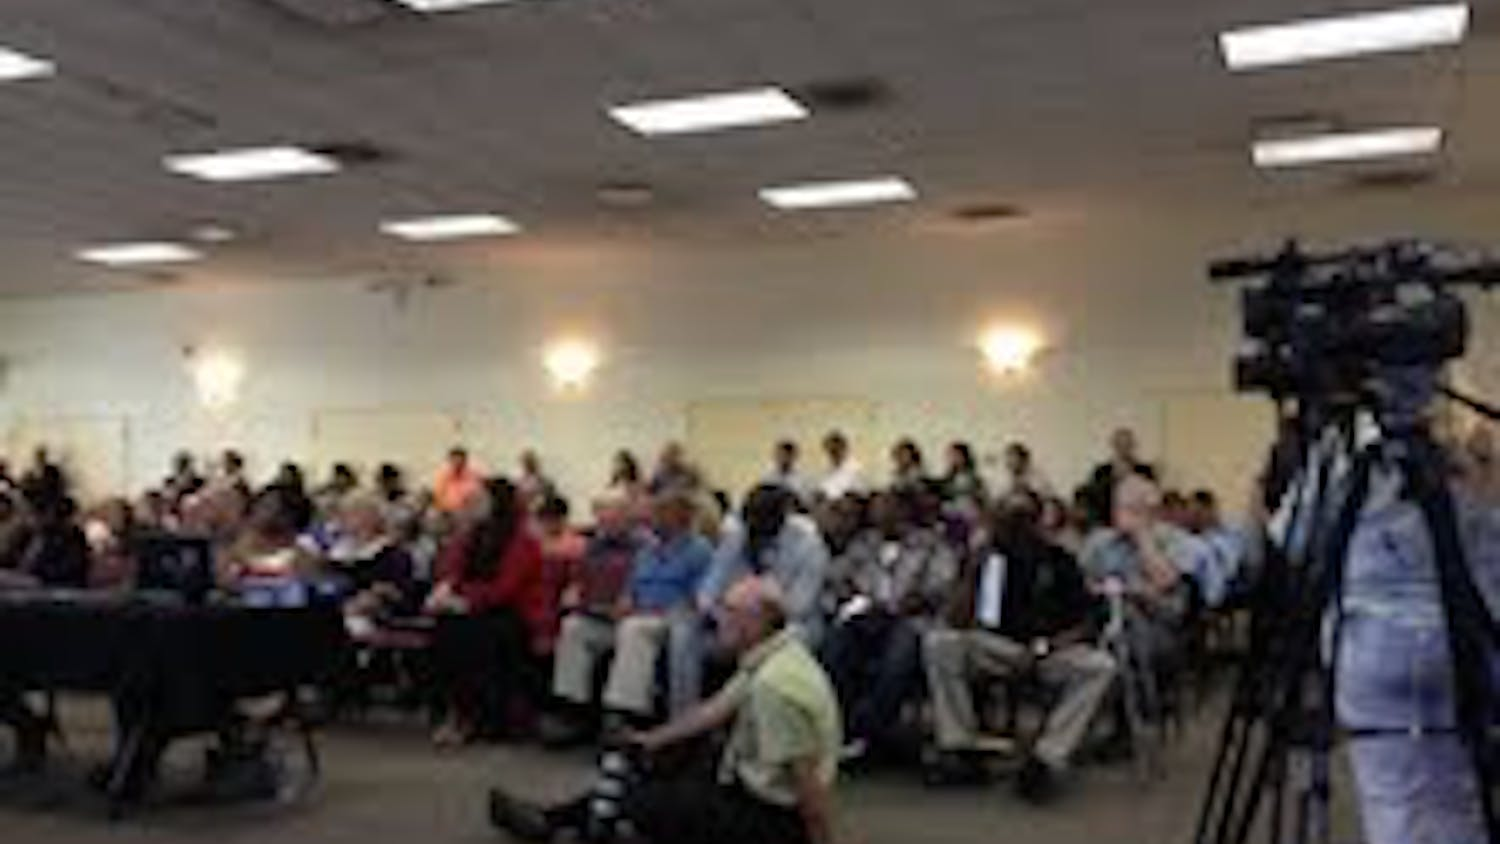 City Council's plan to address homelessness drew a large crowd Tuesday night.